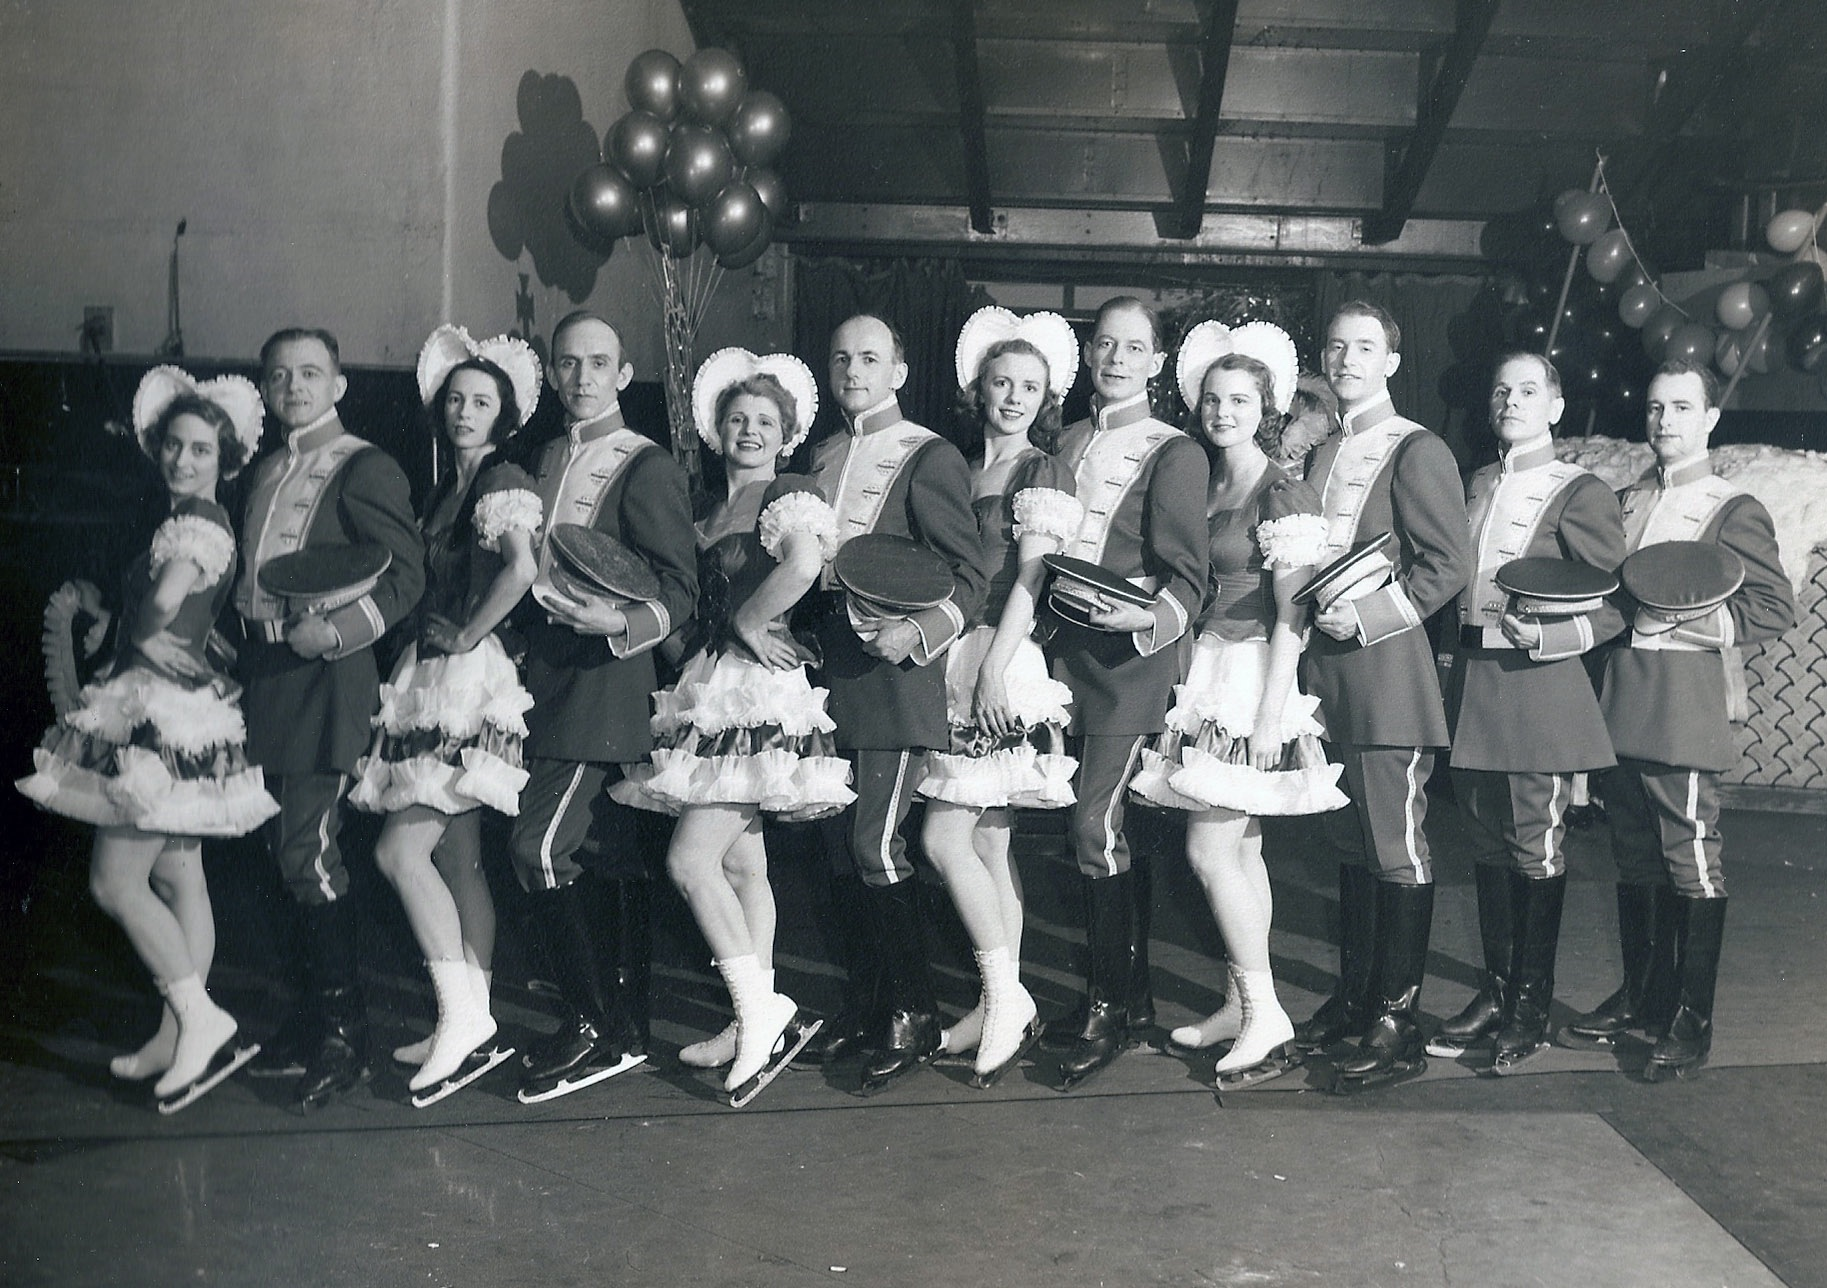 5-time US gold medalist in ice dancing, Harold Hartshorne (5th from right) skated to gold or silver in dance for 8 straight years (with SCNY members Nettie Prantell, Sandy MacDonald and Kathe Mehl). He died aboard Sabena Flight 548 to the 1961 World Championships.